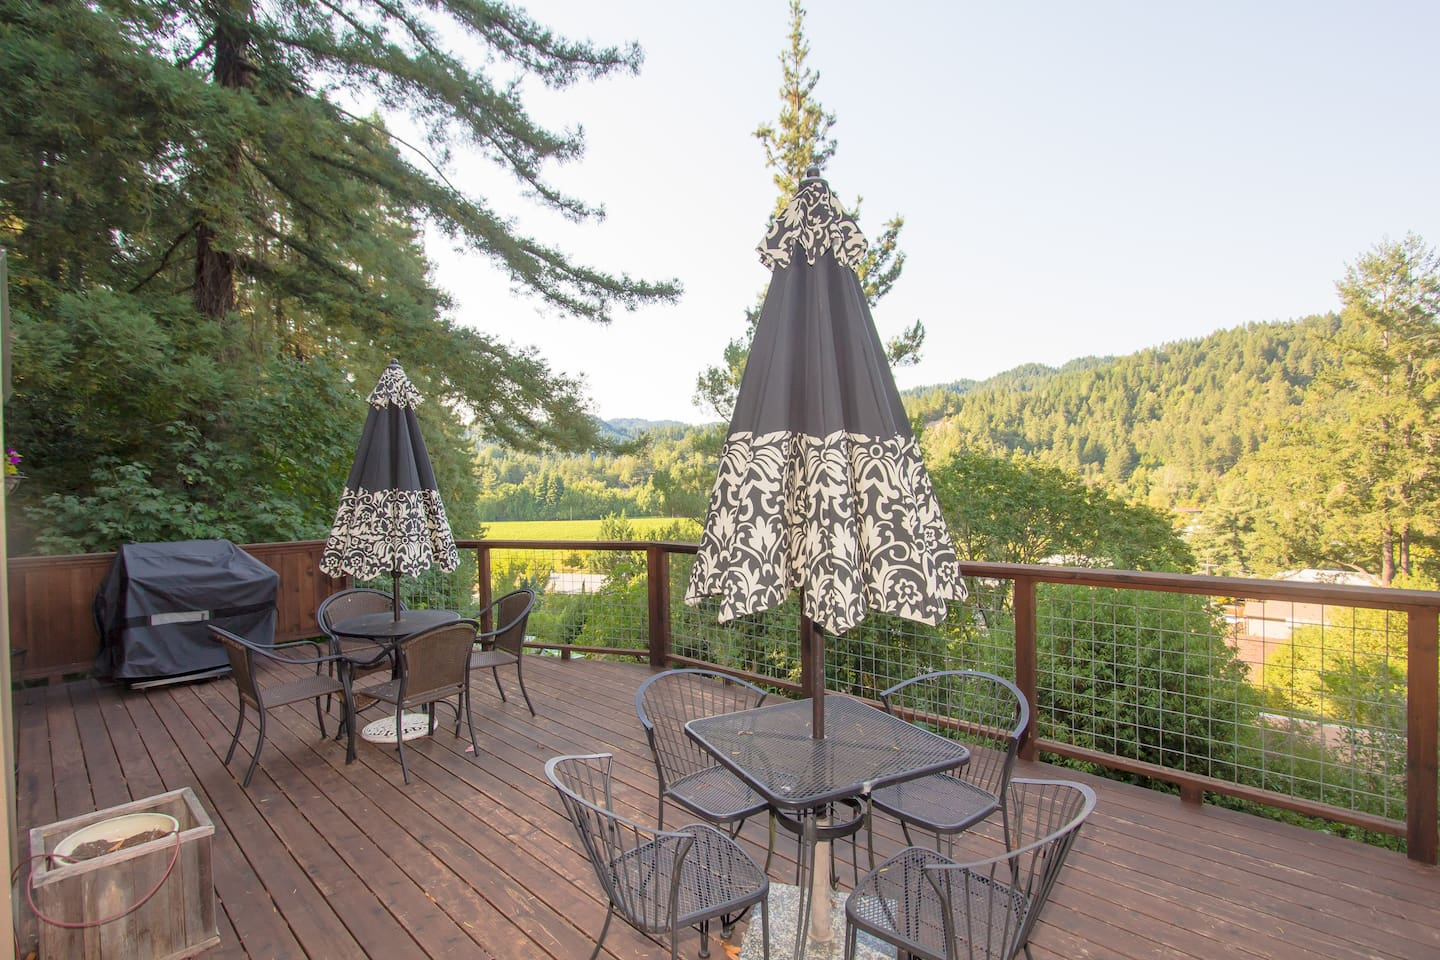 Enjoy the deck with vineyard views!  Outdoor BBQ and dining!